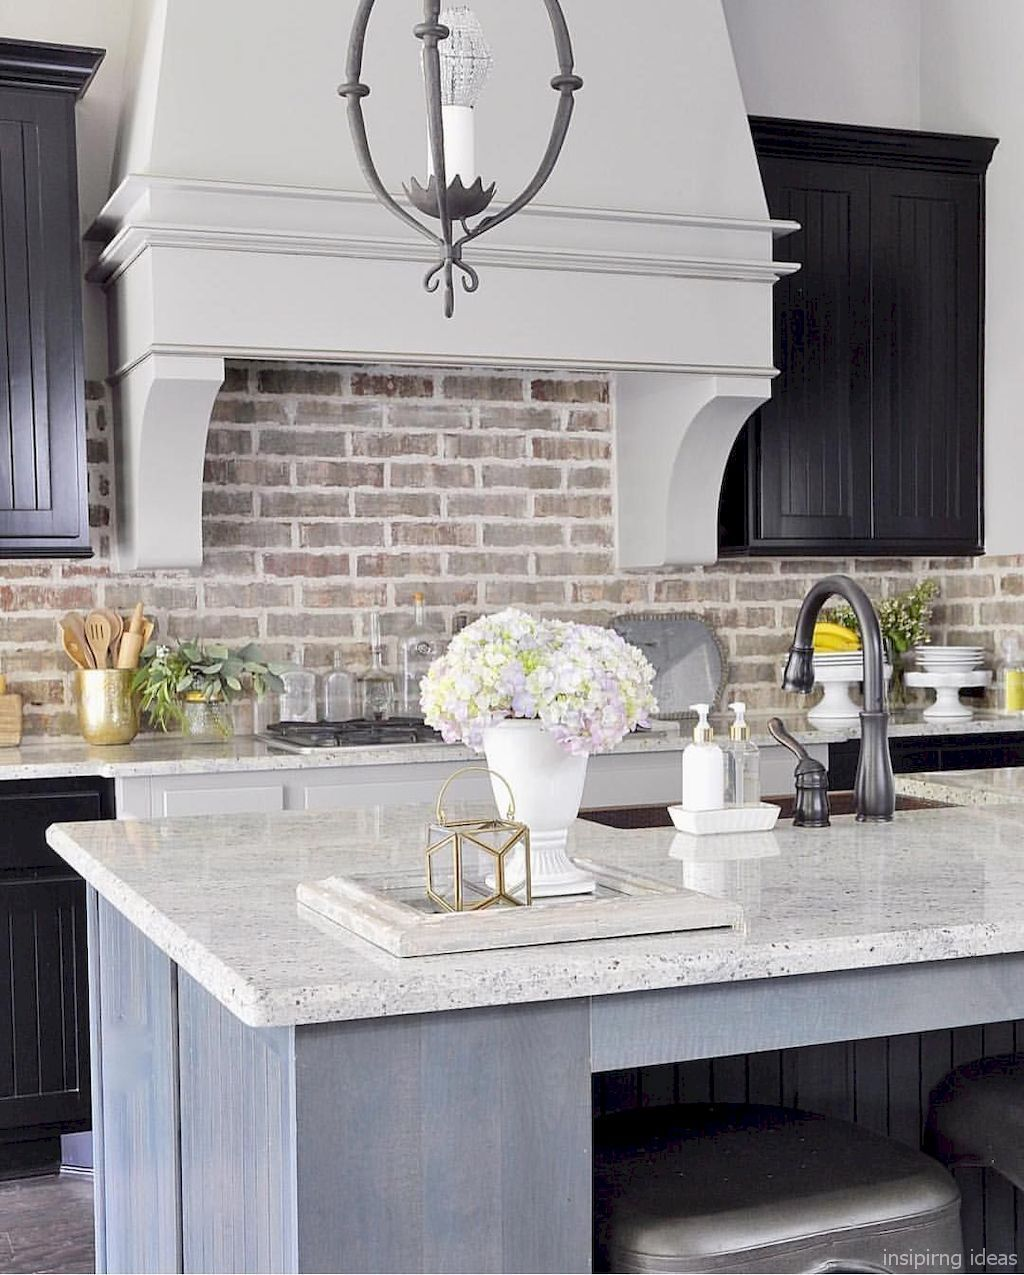 beautiful modern farmhouse kitchen backsplash ideas 05 with images farmhouse kitchen on farmhouse kitchen backsplash id=88228